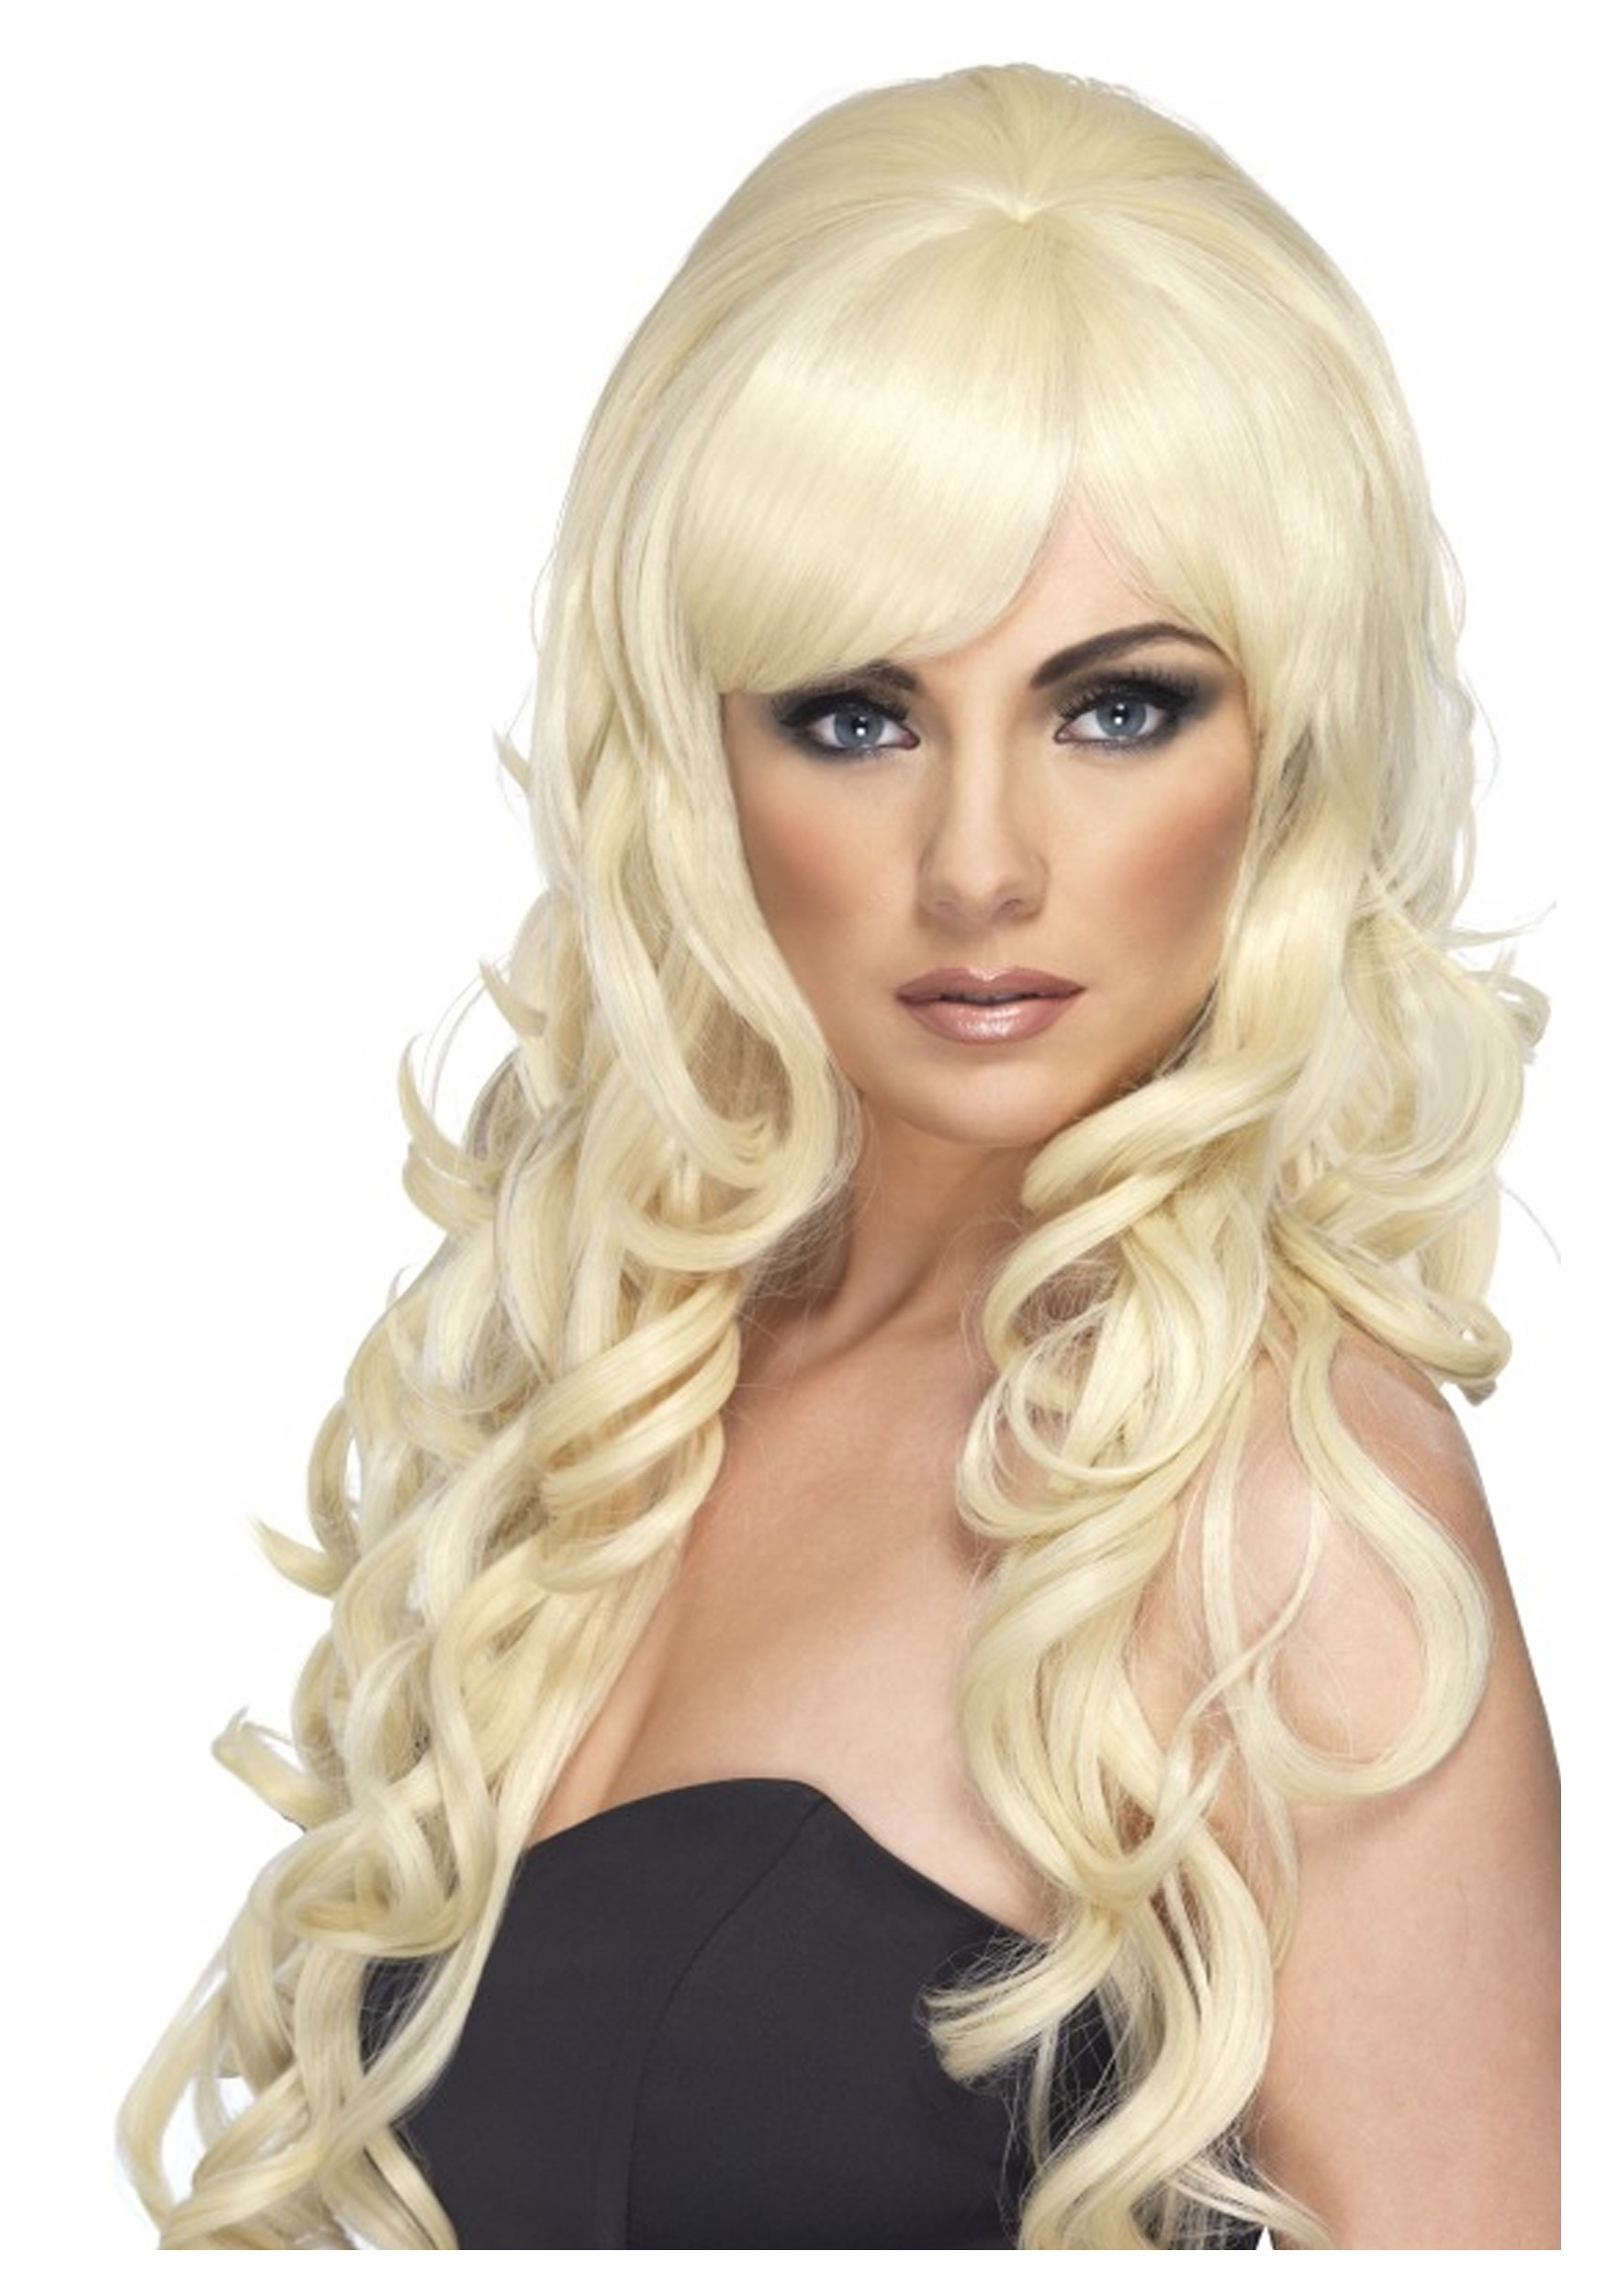 Blonde Pop Starlet Wig